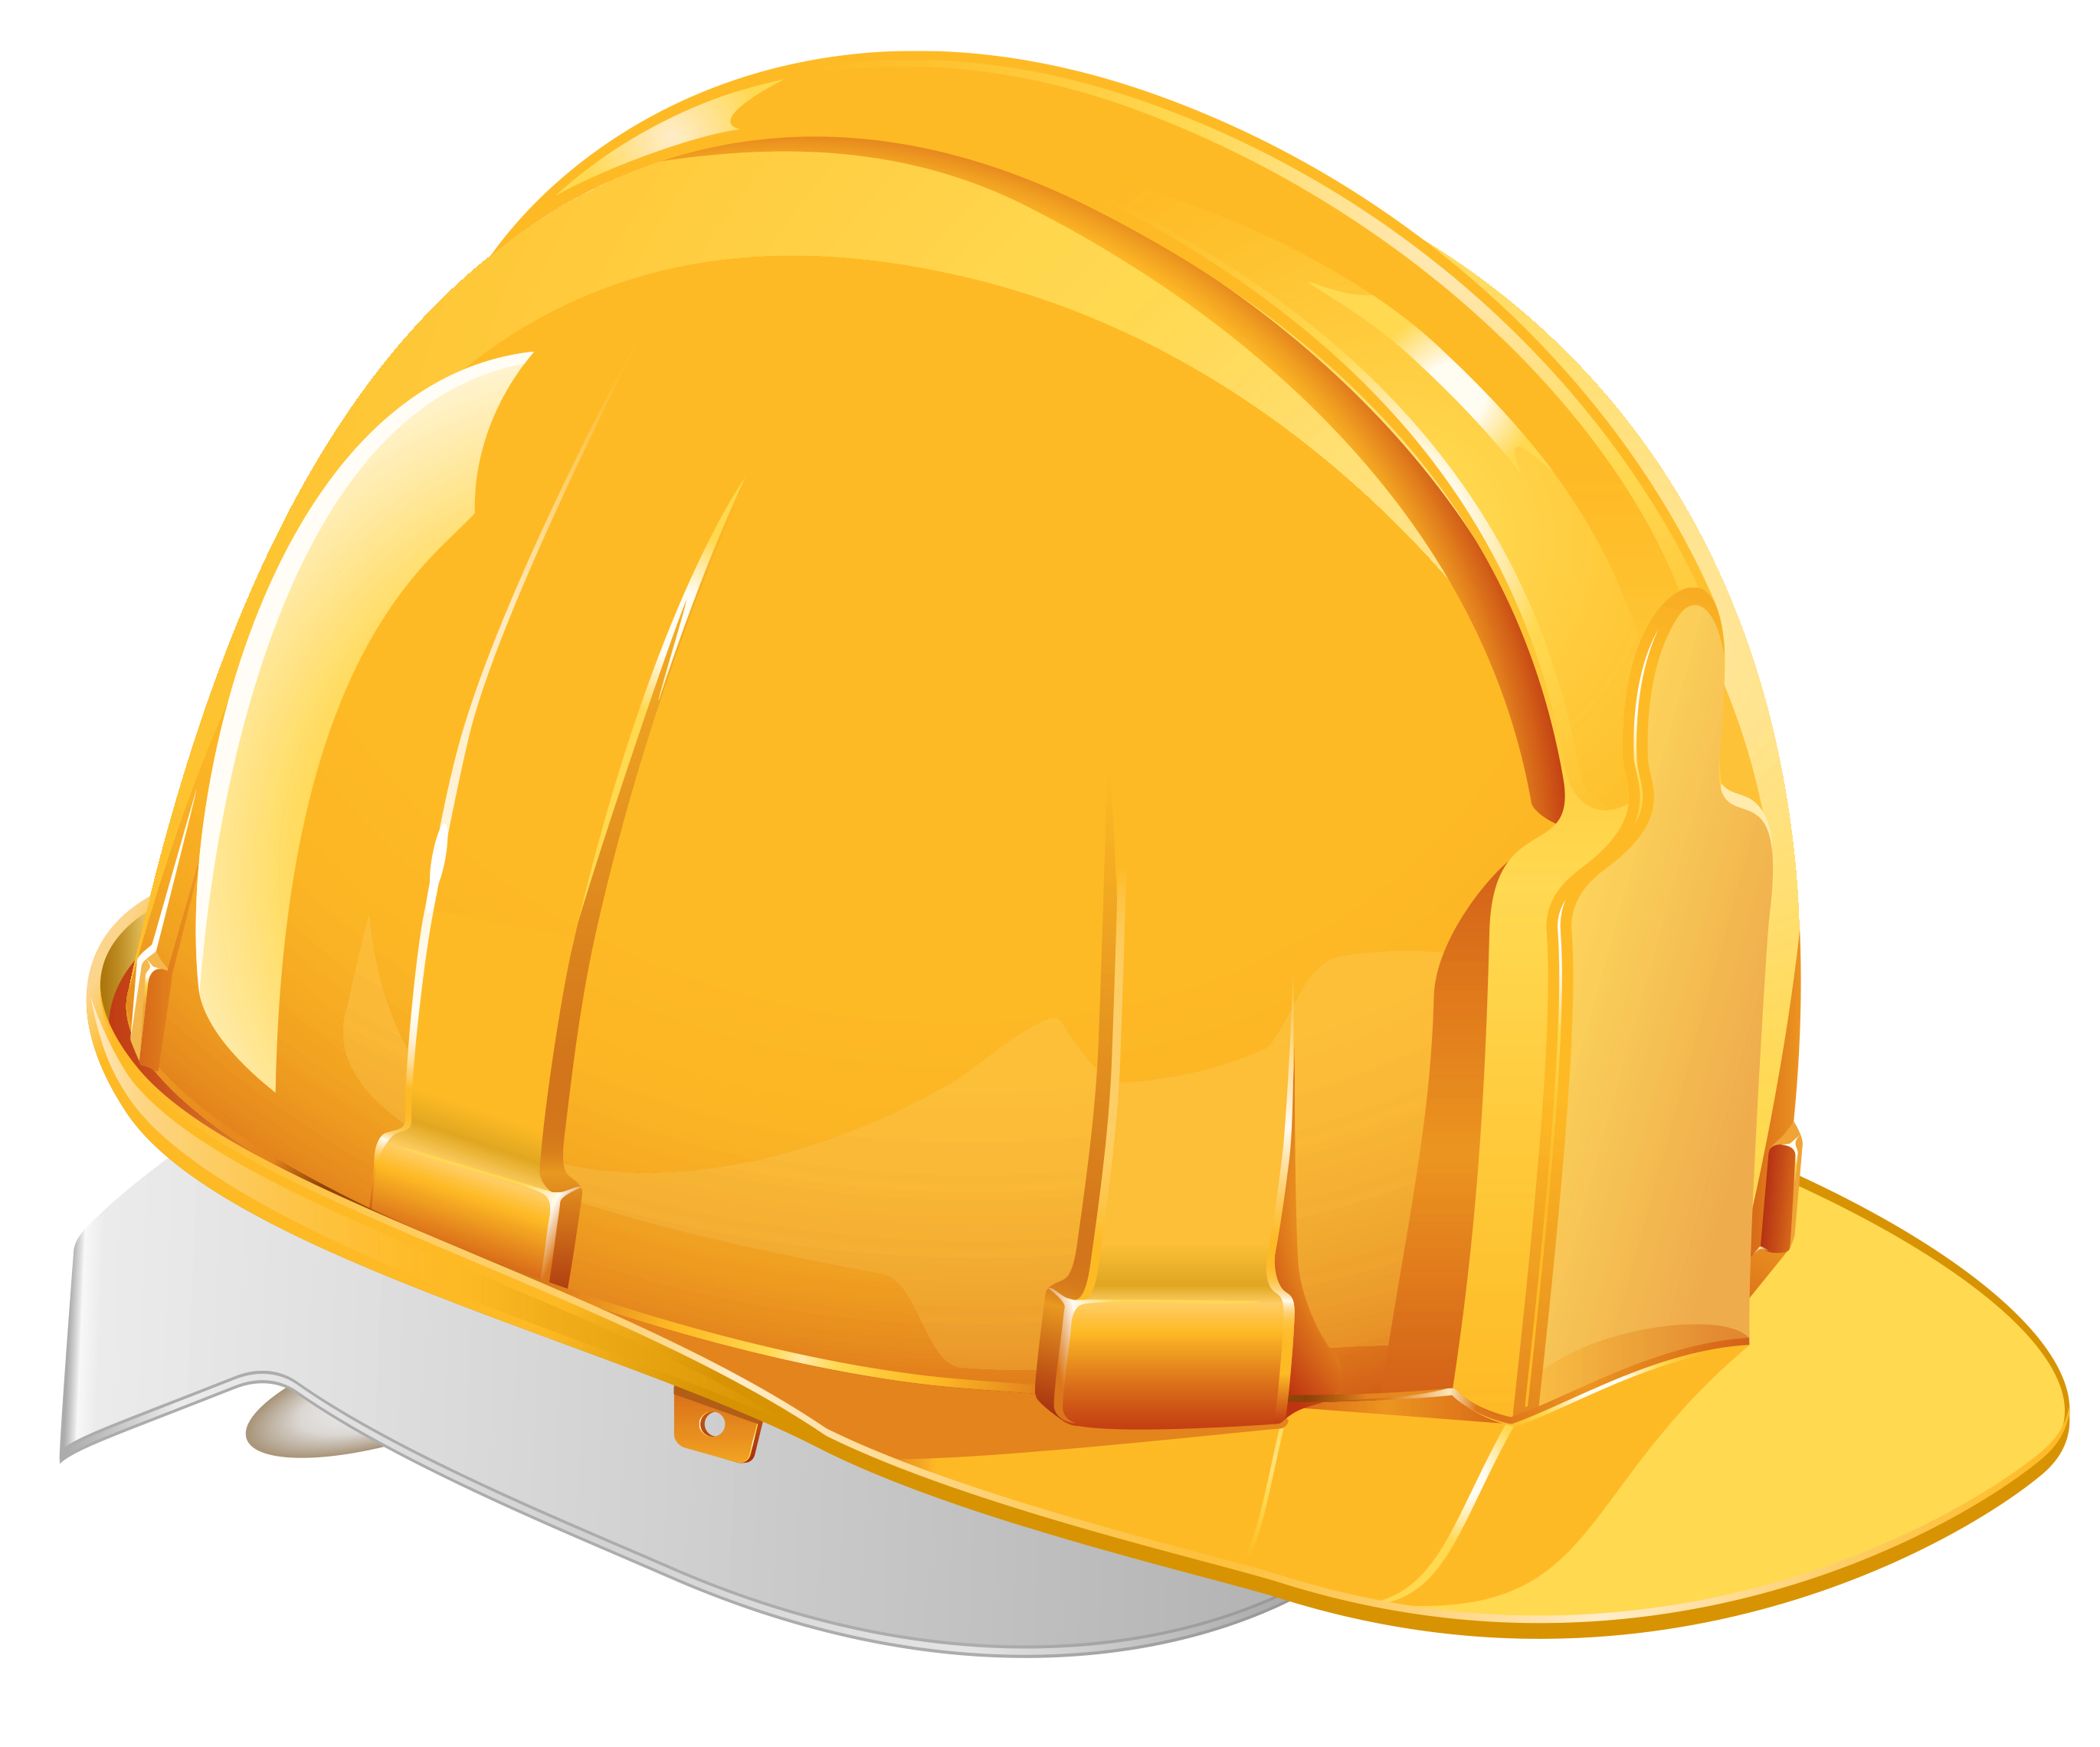 Construction site clipart clipart Top Green Construction Hat Clip Art Pictures - Vector Art Library clipart